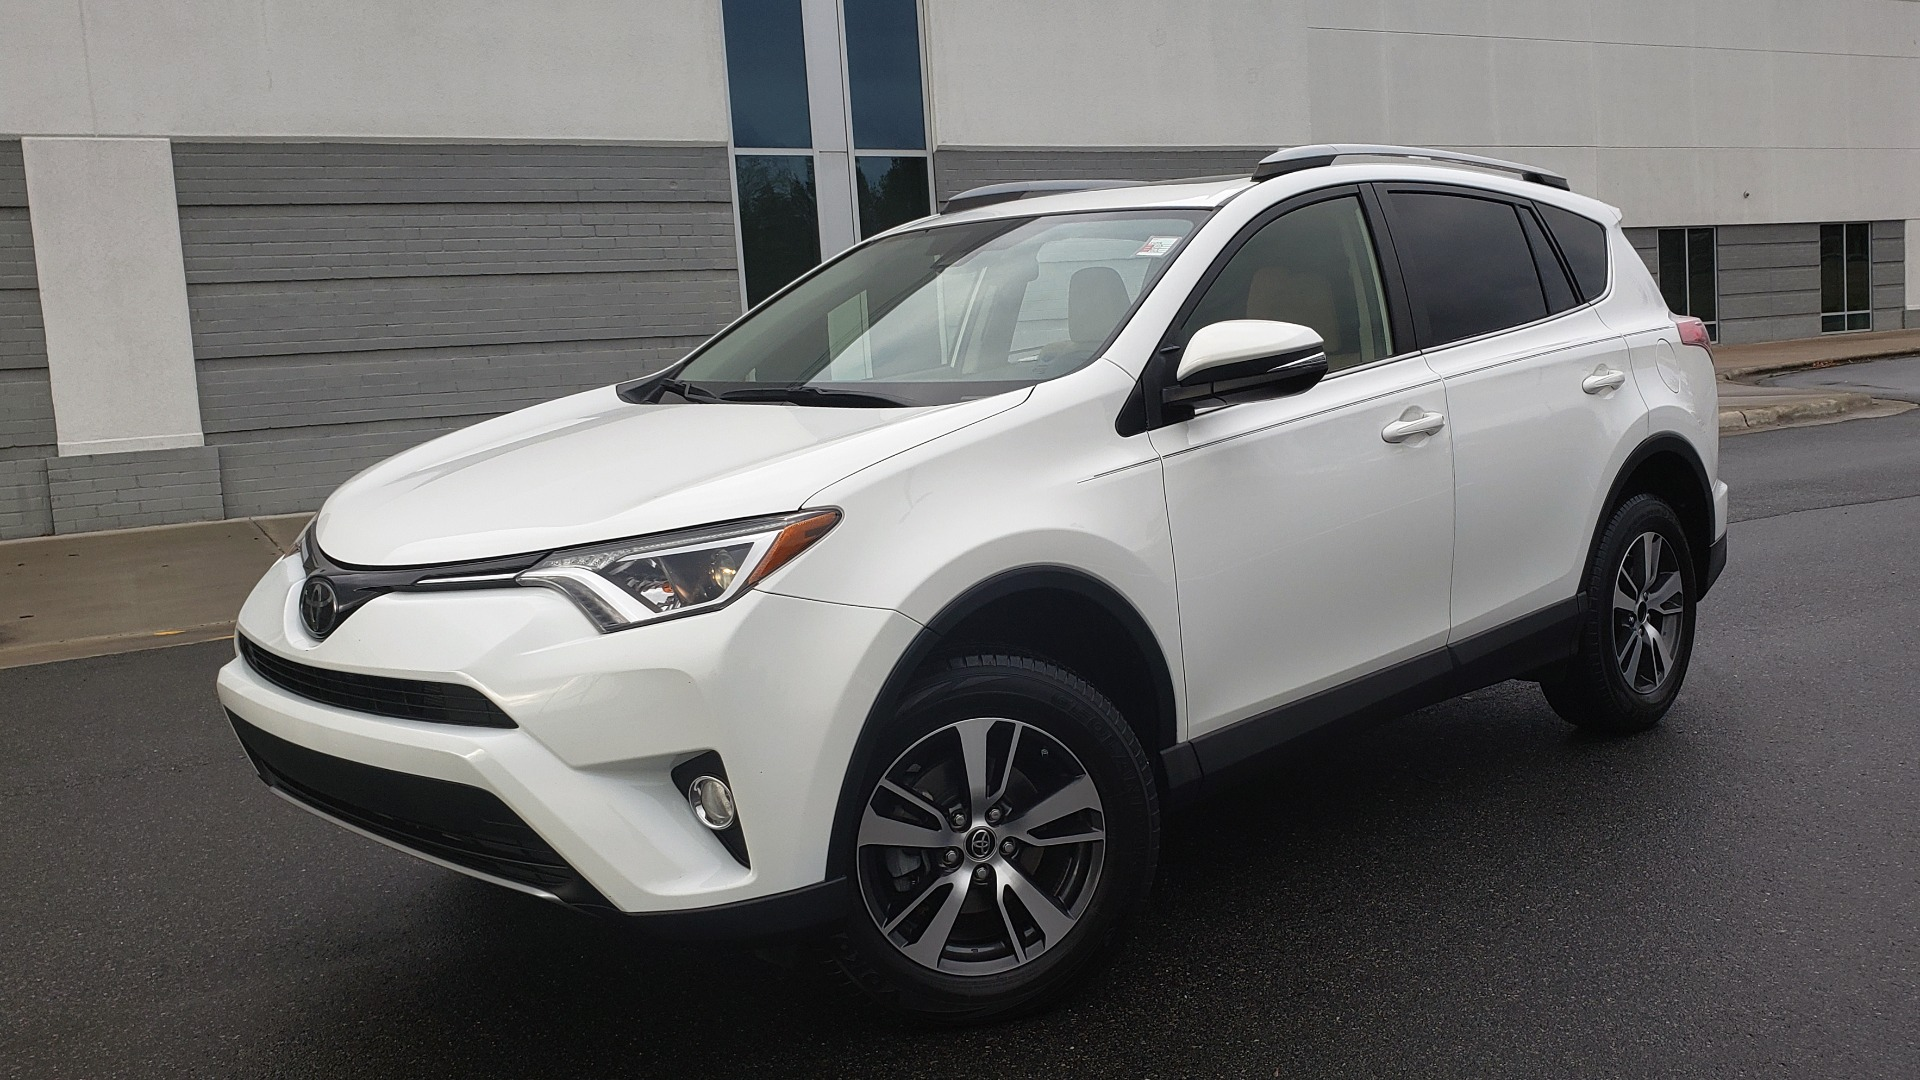 Used 2018 Toyota RAV4 XLE / FWD / 4-CYL / 6-SPD AUTO / BSM / REAR CROSS TRAFFIC ALERT for sale Sold at Formula Imports in Charlotte NC 28227 1